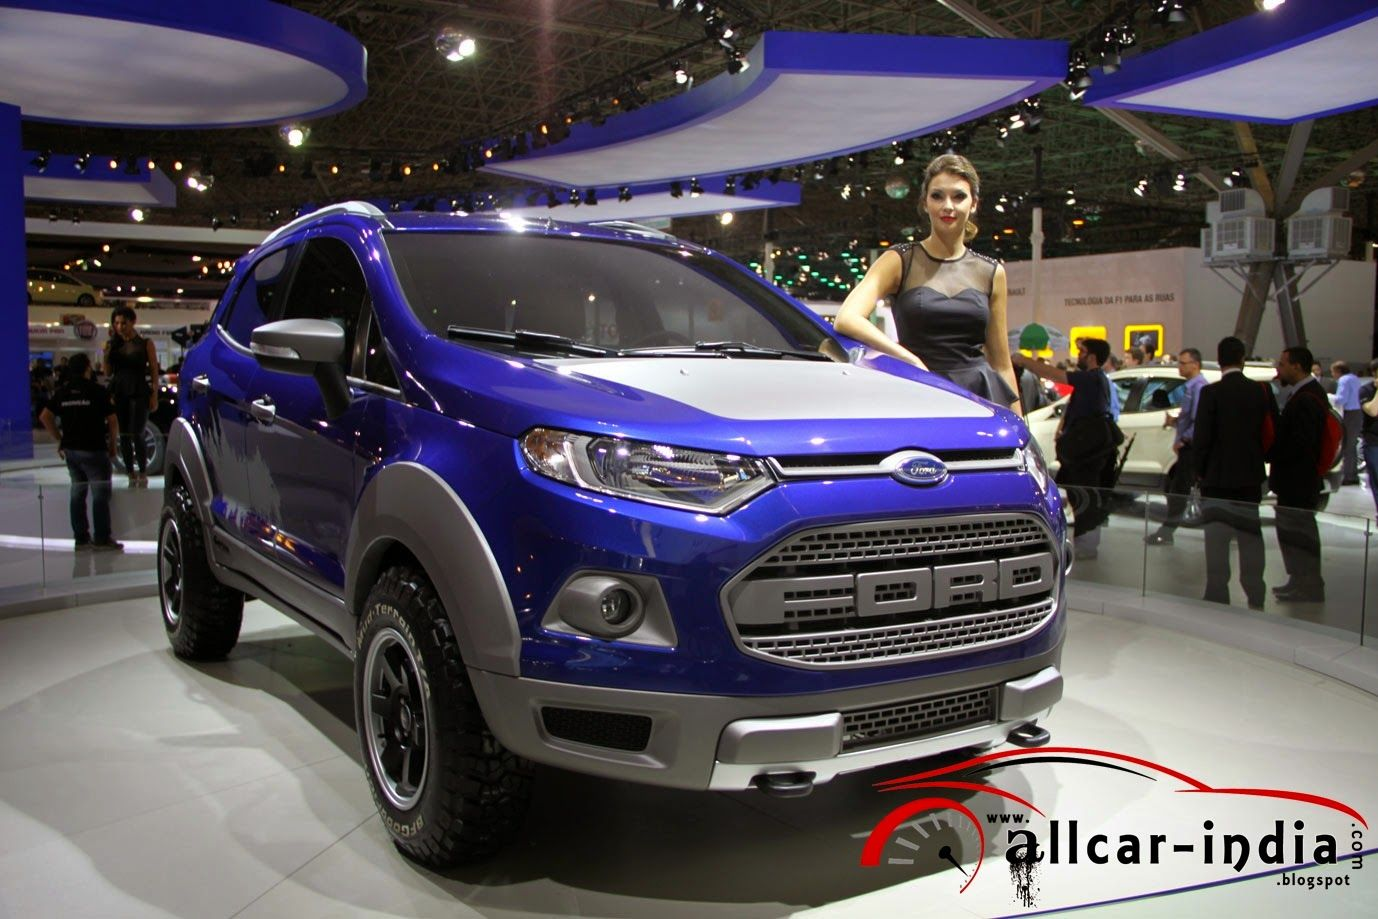 Ford Of Brazil Has Showcased Three New Customized Versions Of The Ford Ecosport At Sao Paulo International Motor Show Without Discus Ford Ecosport Ford Brazil